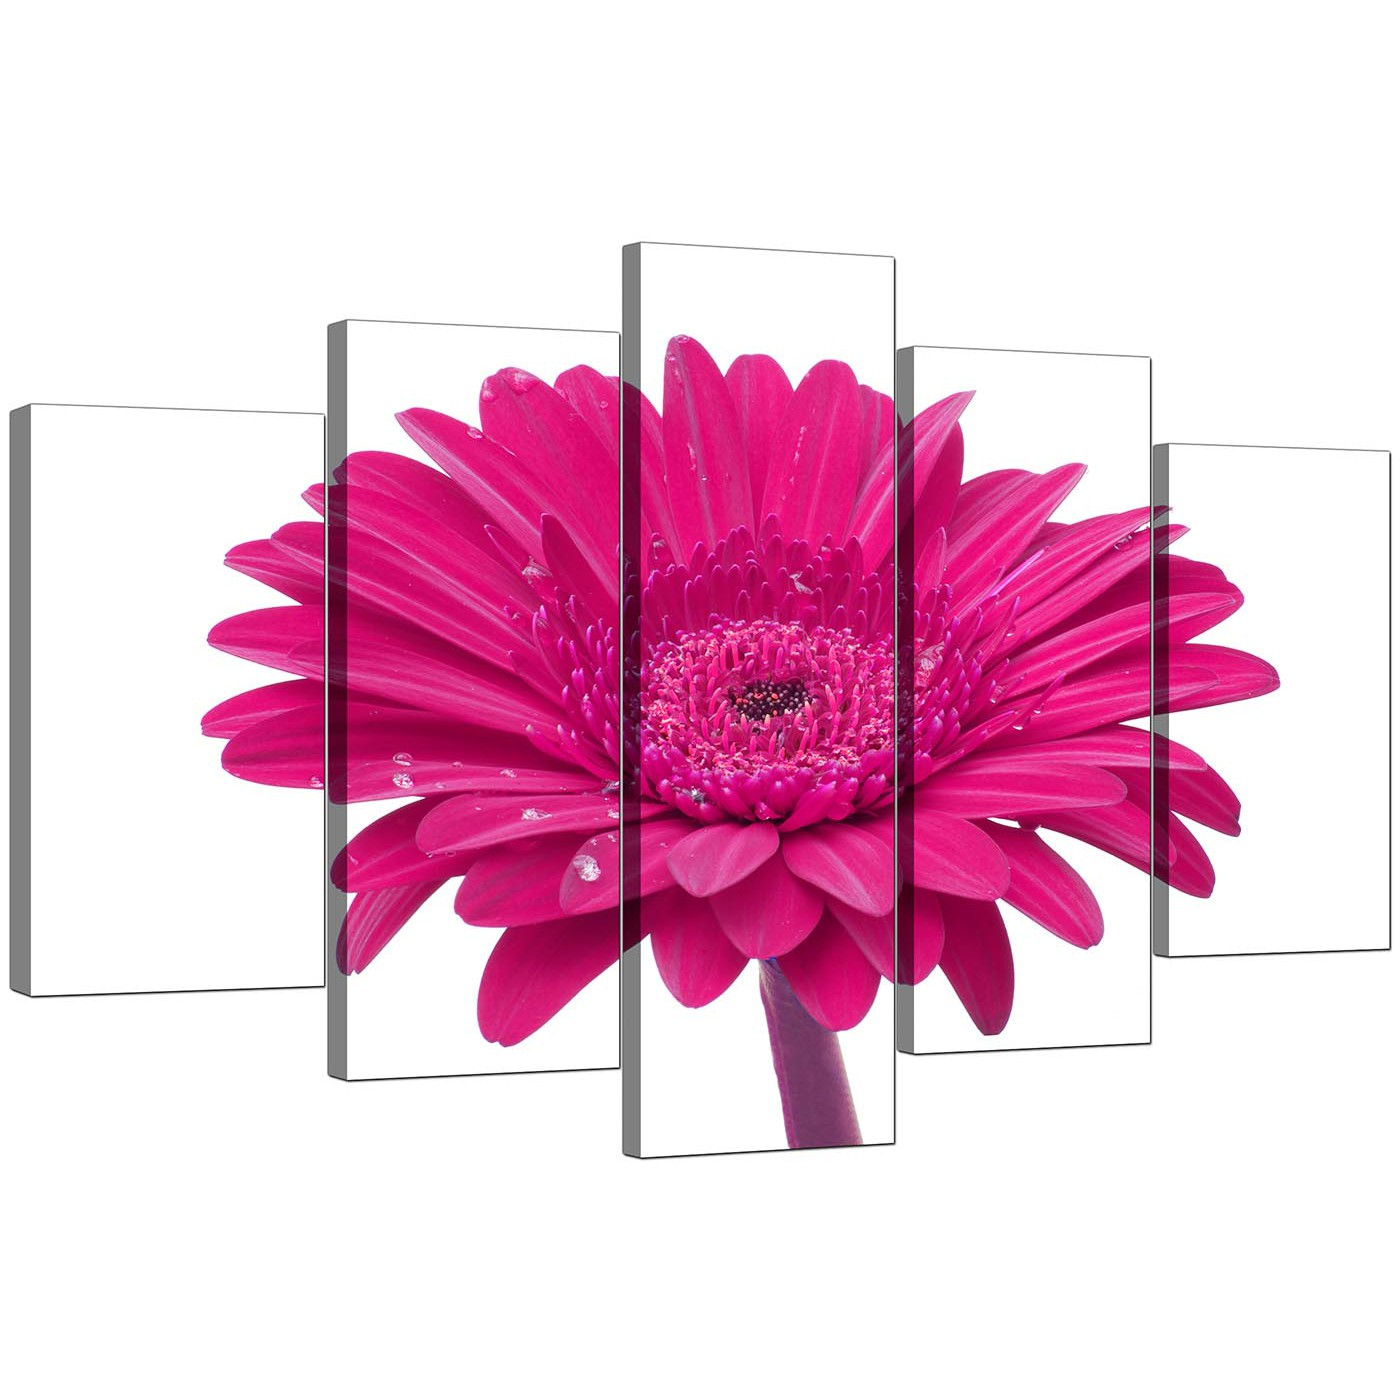 Flower Canvas Wall Art extra large flower canvas wall art 5 piece in pink